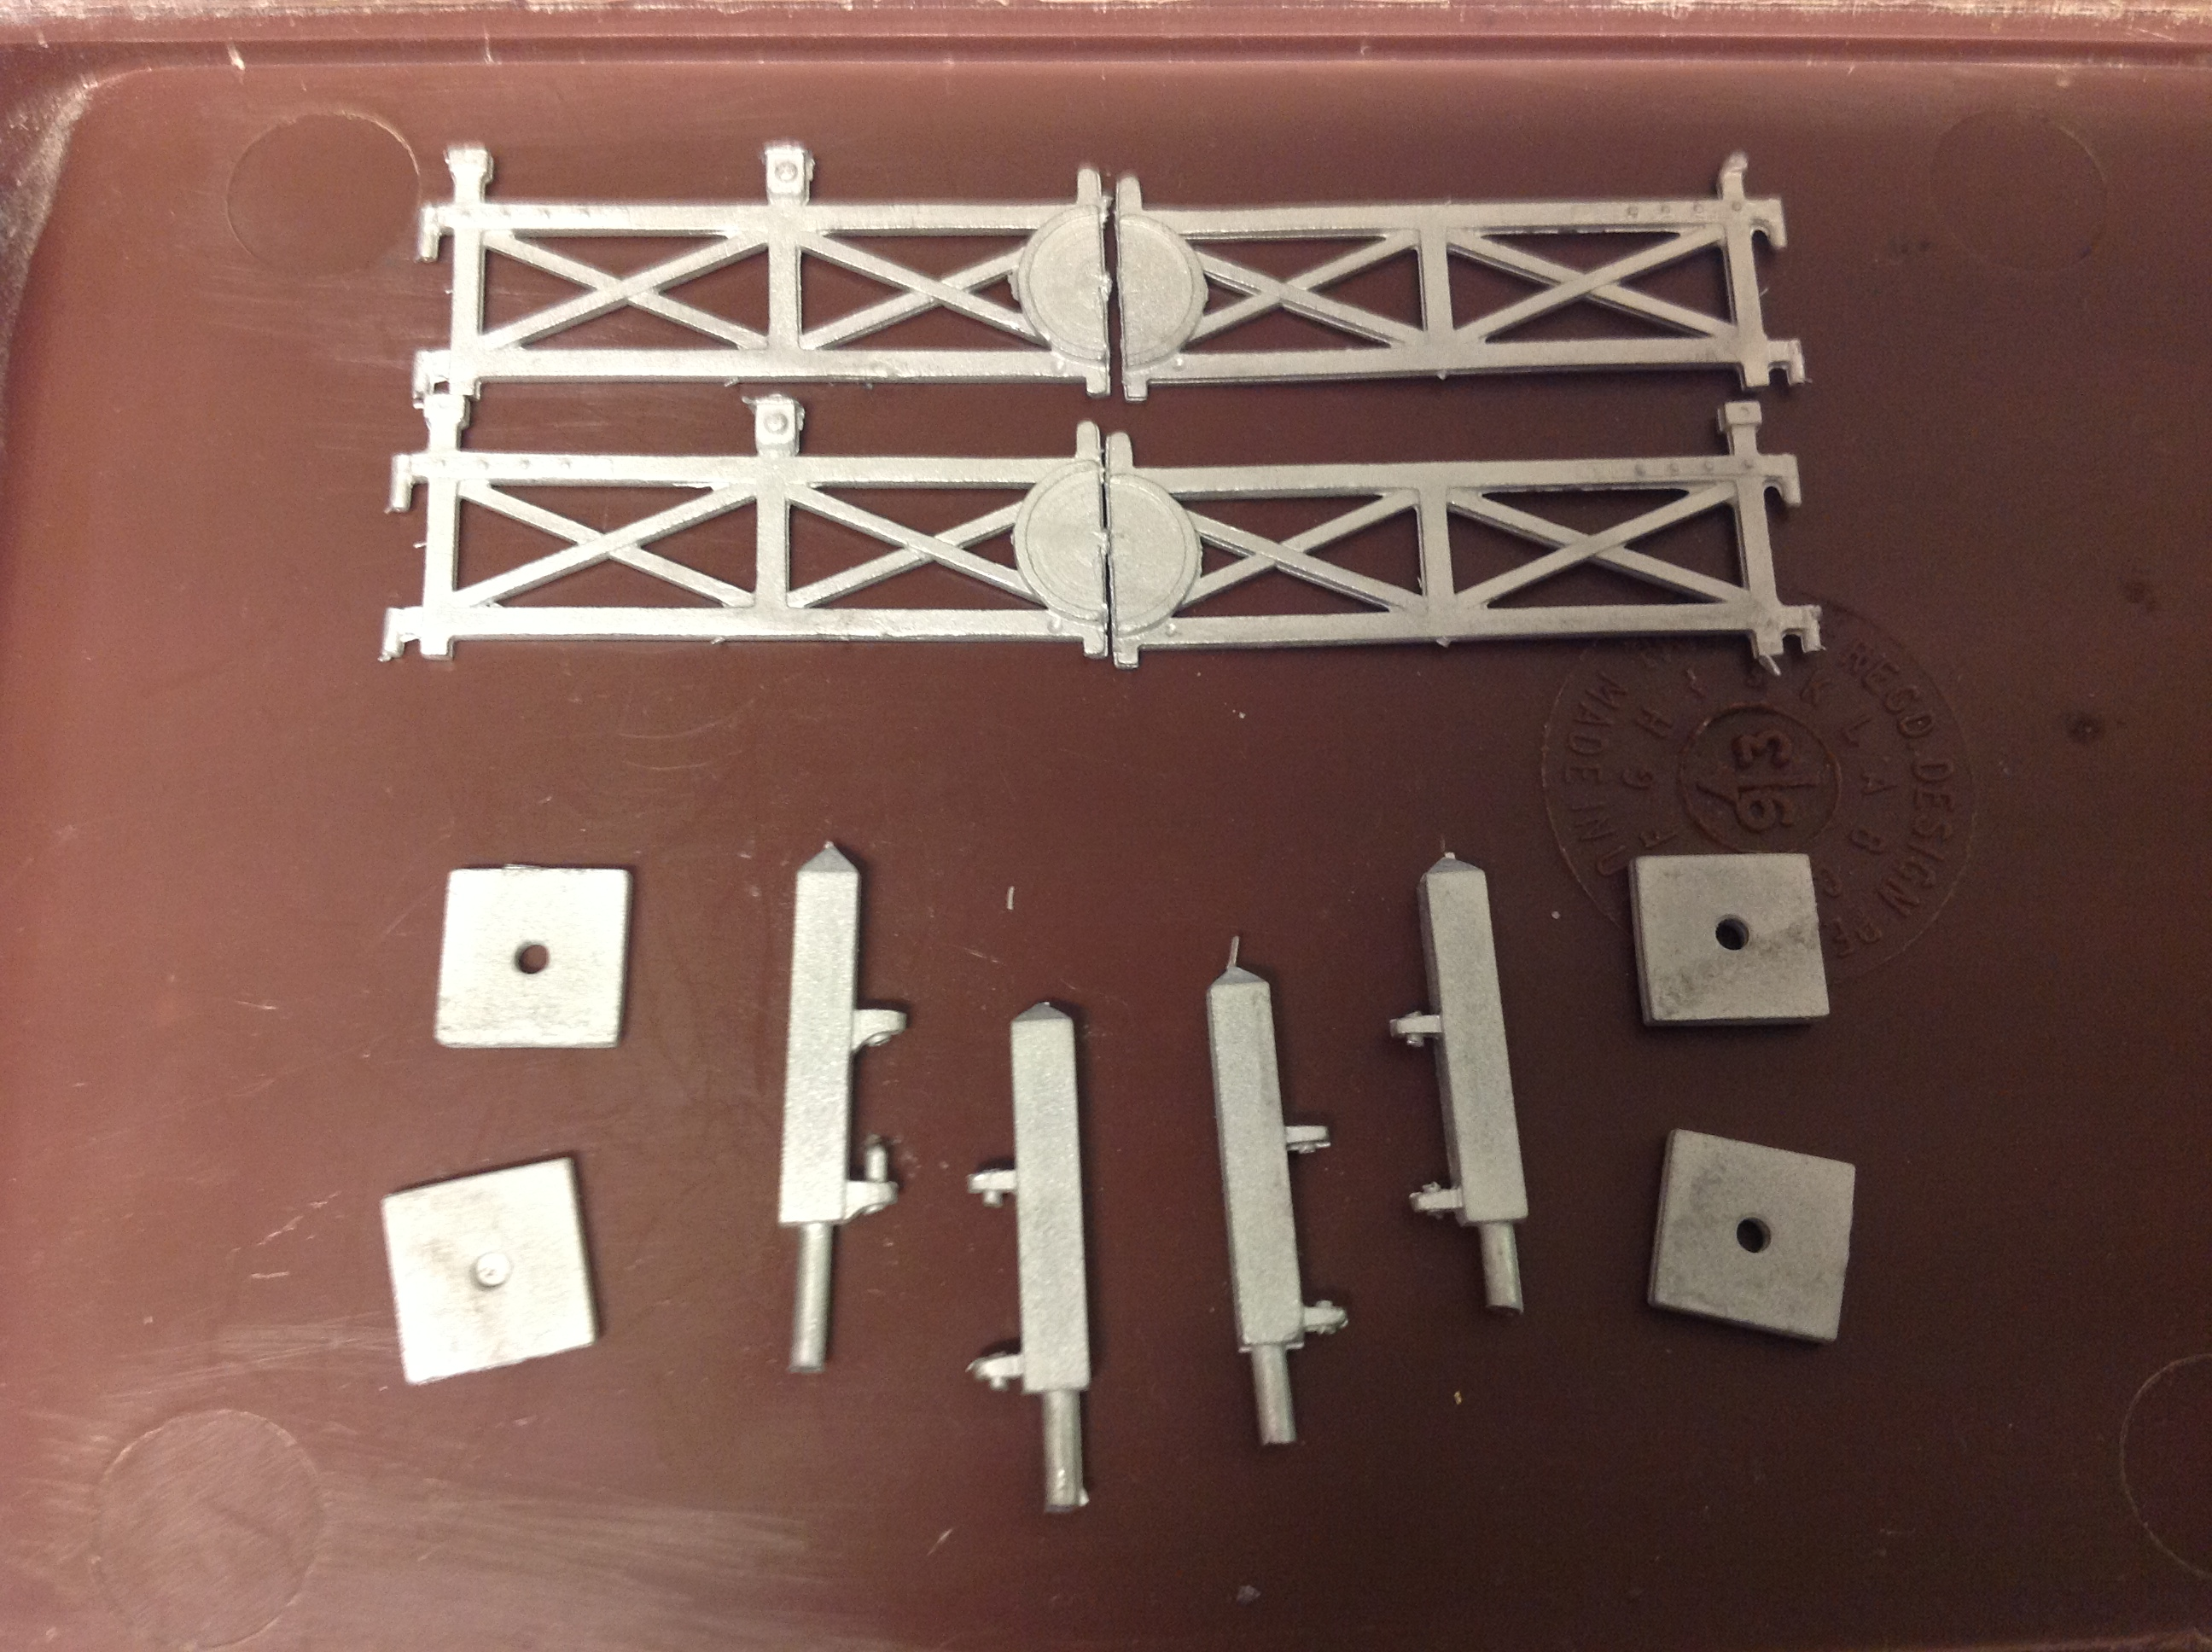 N72a Double Track Crossing Set